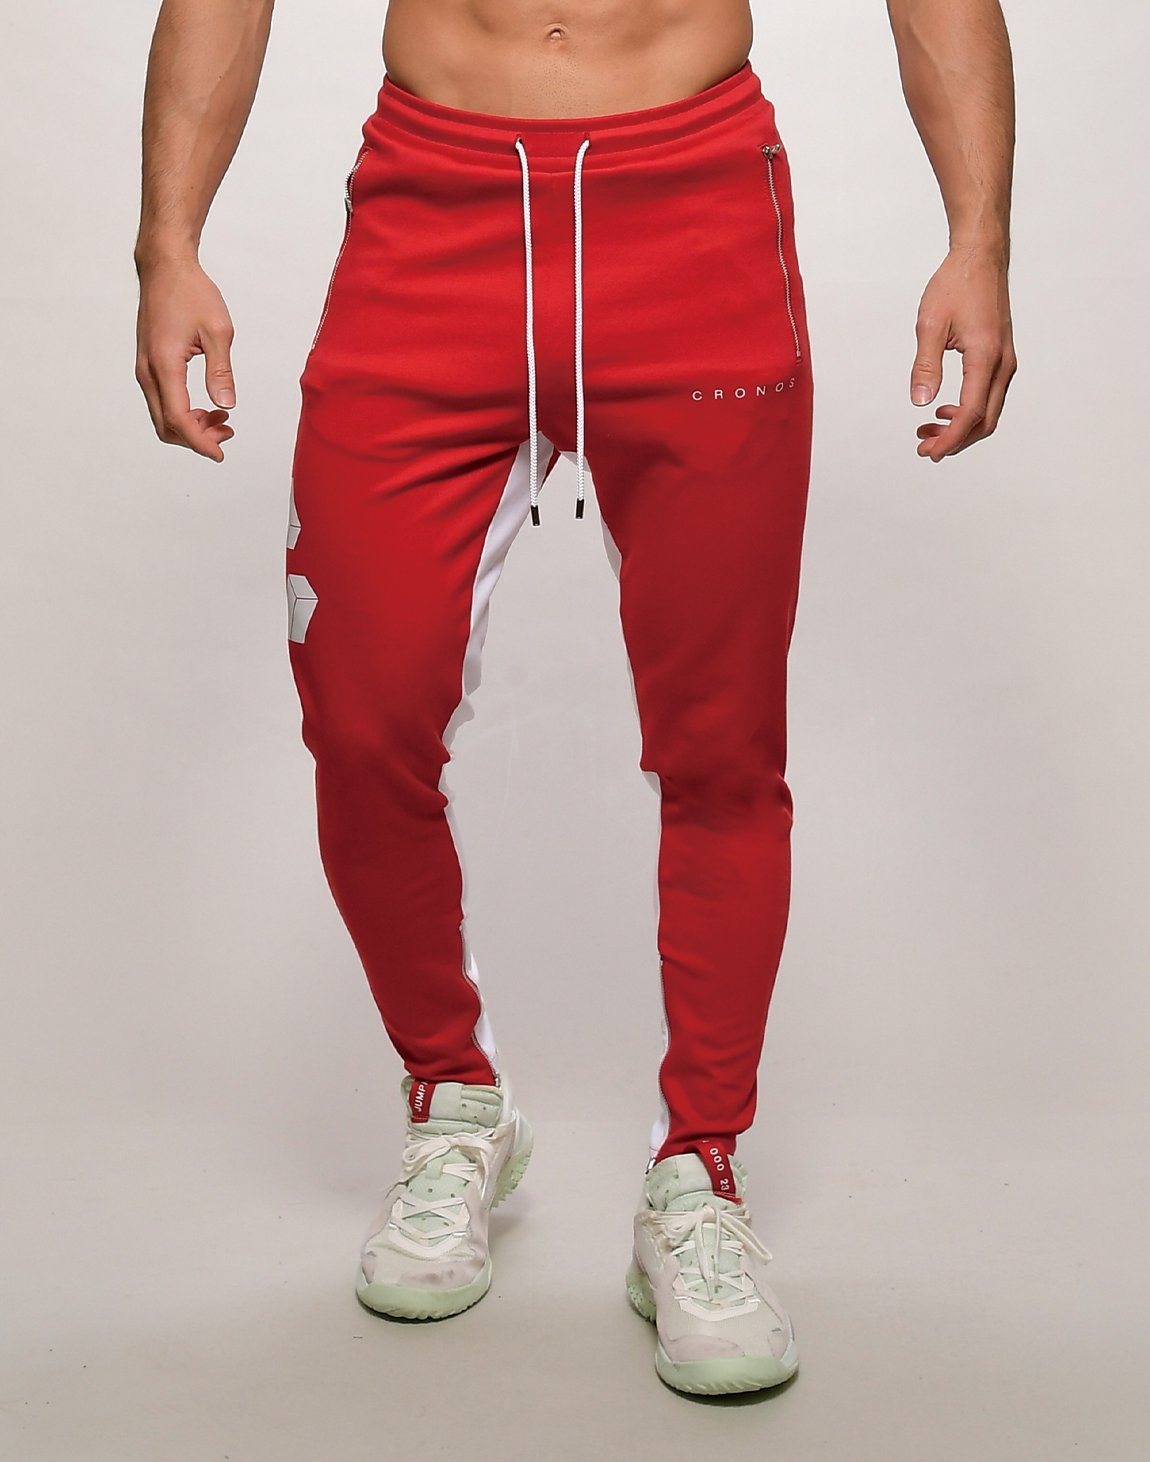 <img class='new_mark_img1' src='https://img.shop-pro.jp/img/new/icons1.gif' style='border:none;display:inline;margin:0px;padding:0px;width:auto;' />CRONOS BIG LOGO SWEET PANTS【RED】